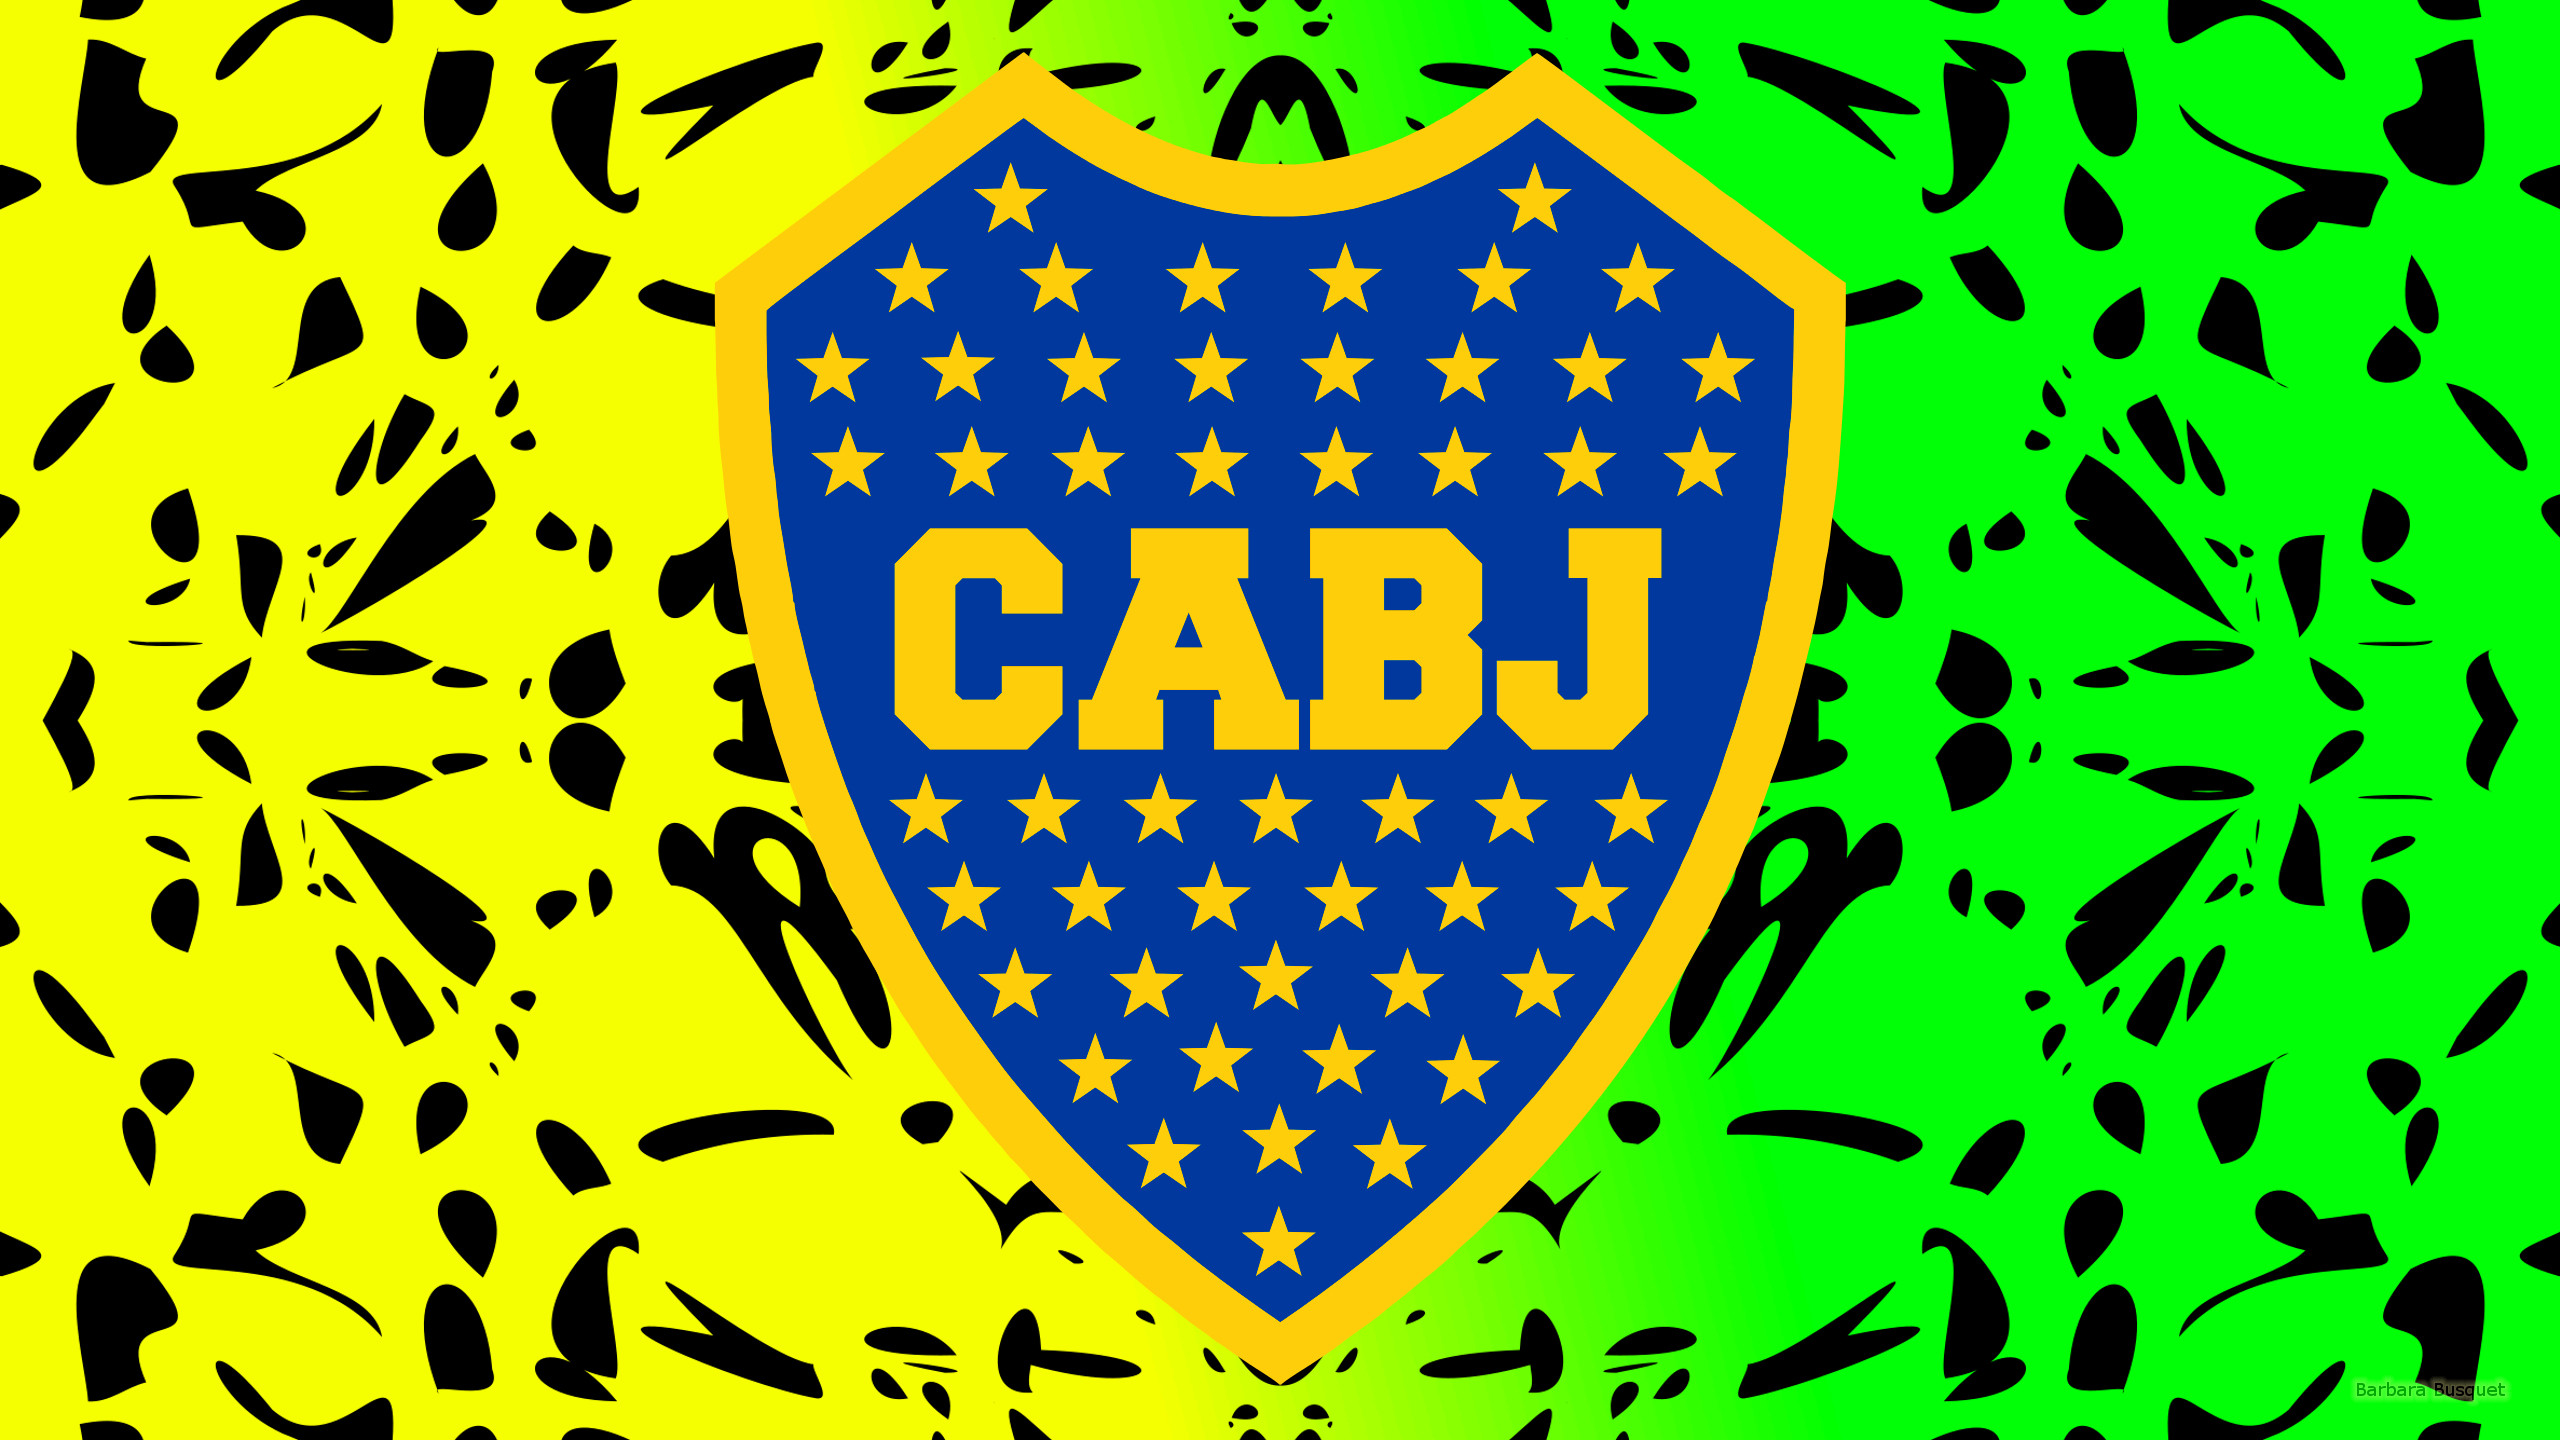 CA Boca Juniors football club   Barbaras HD Wallpapers 2560x1440